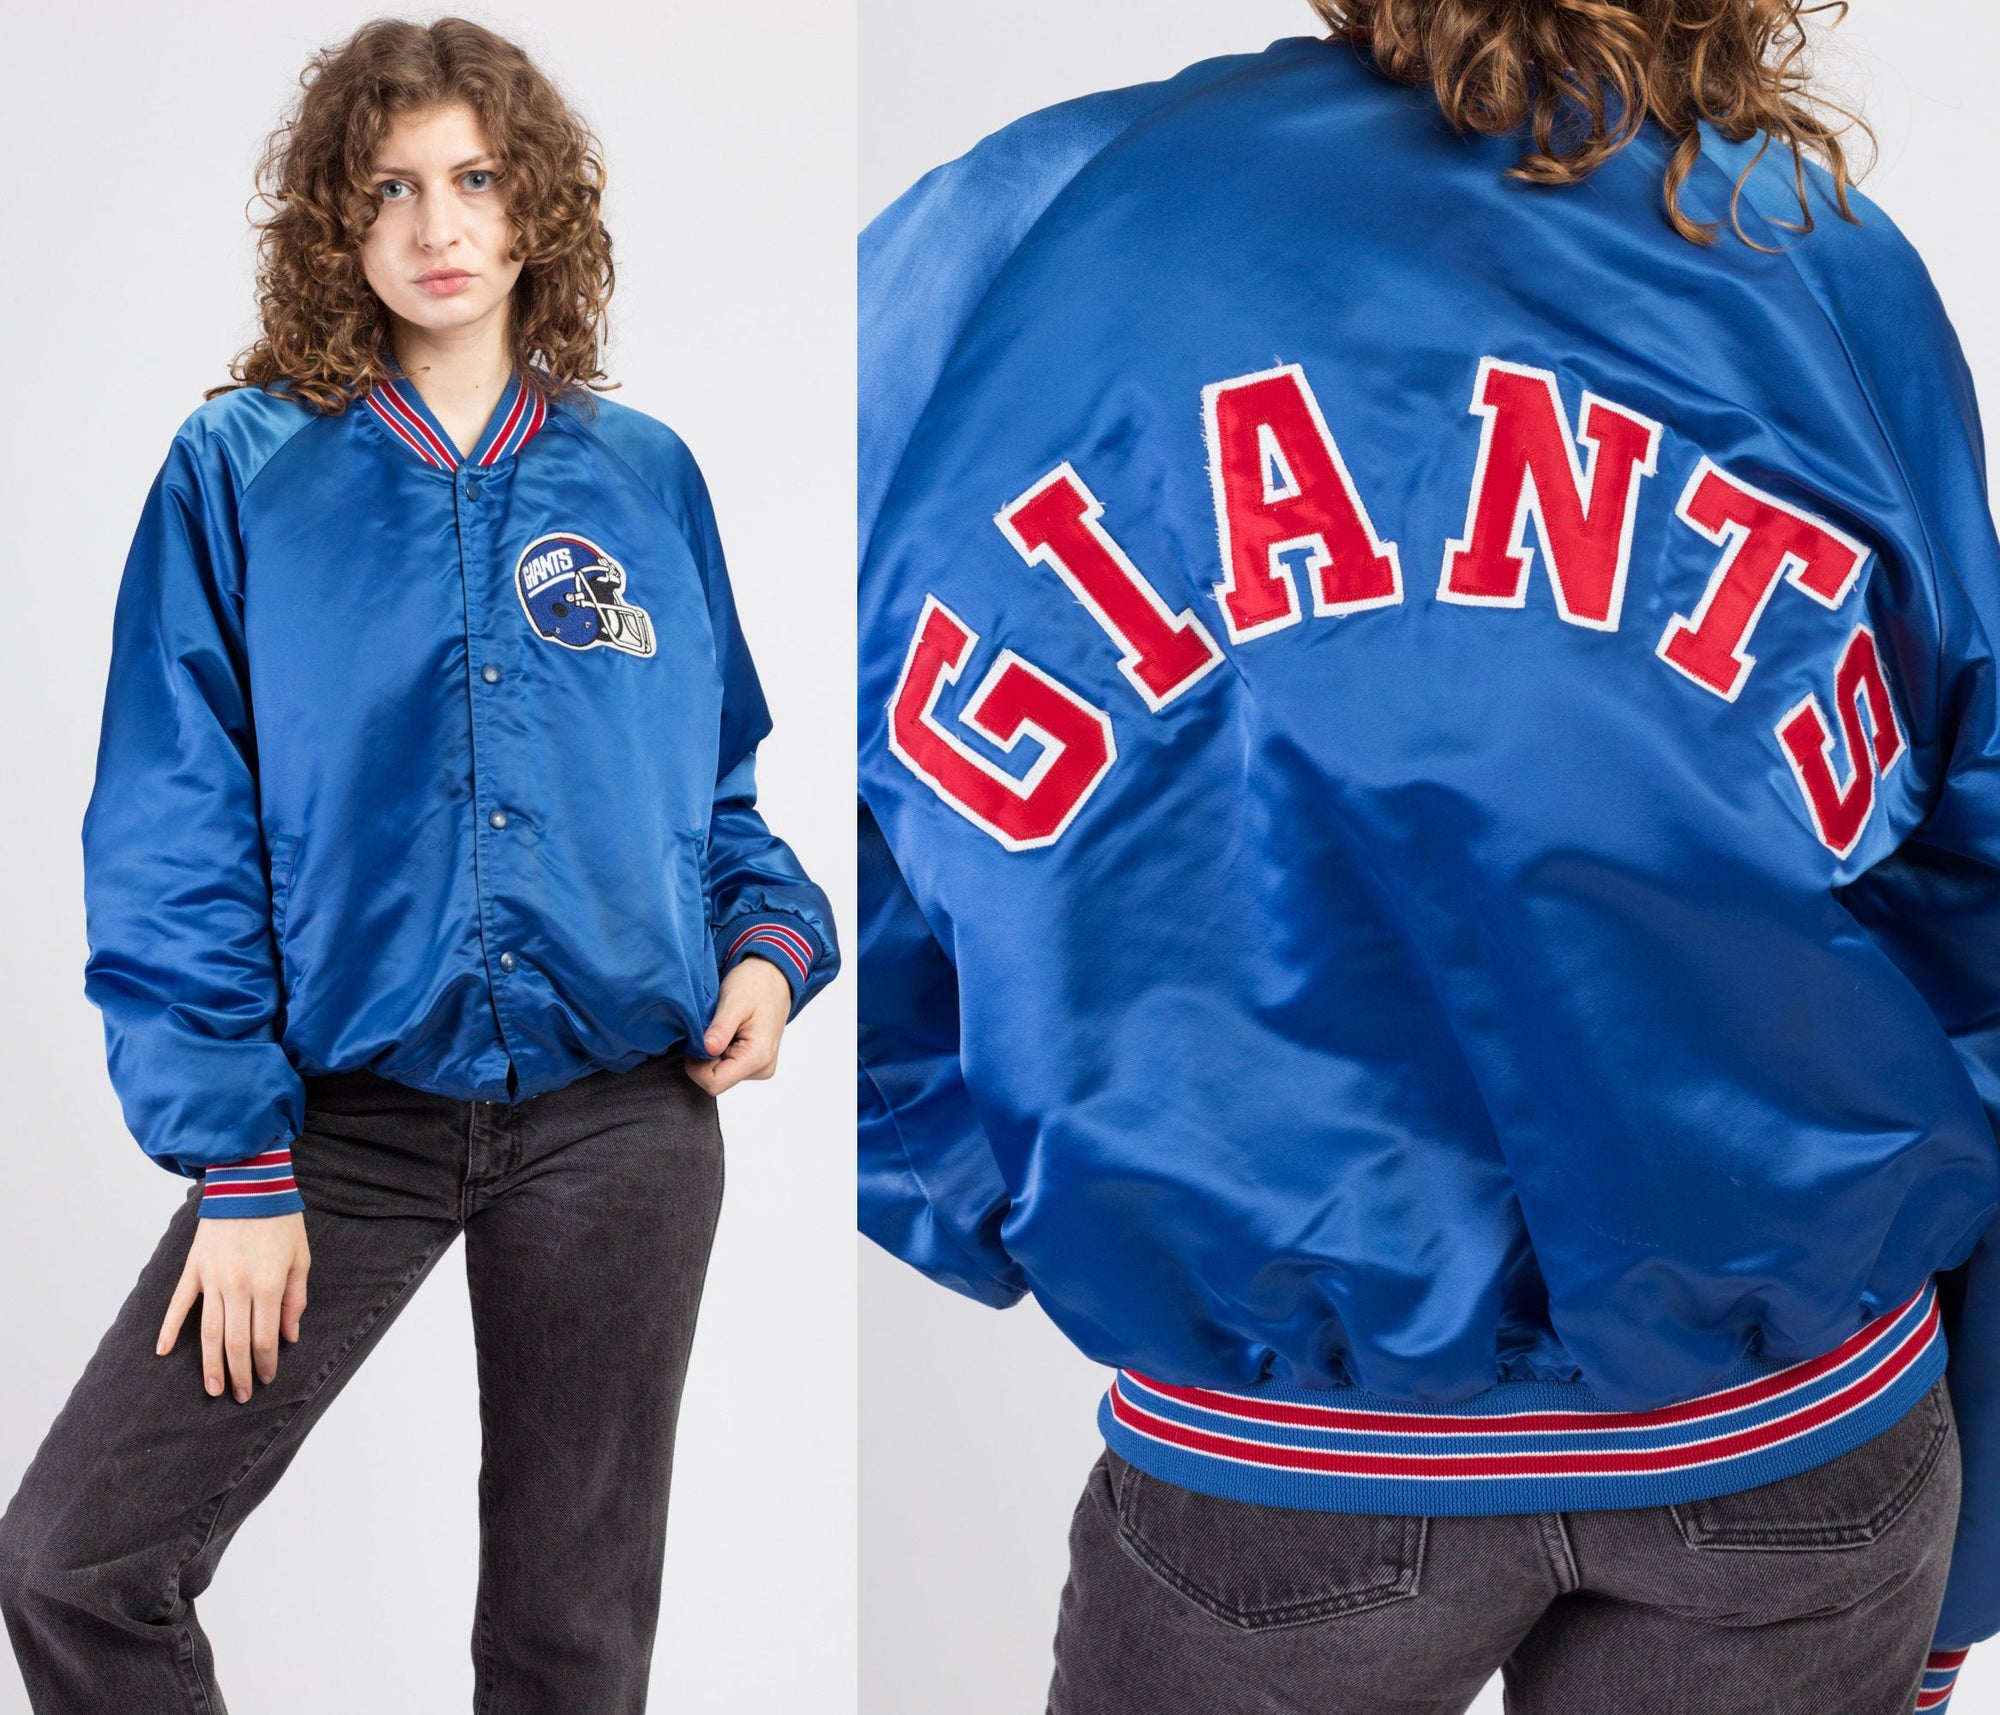 80s New York Giants Chalk Line Satin Jacket - Men's Large